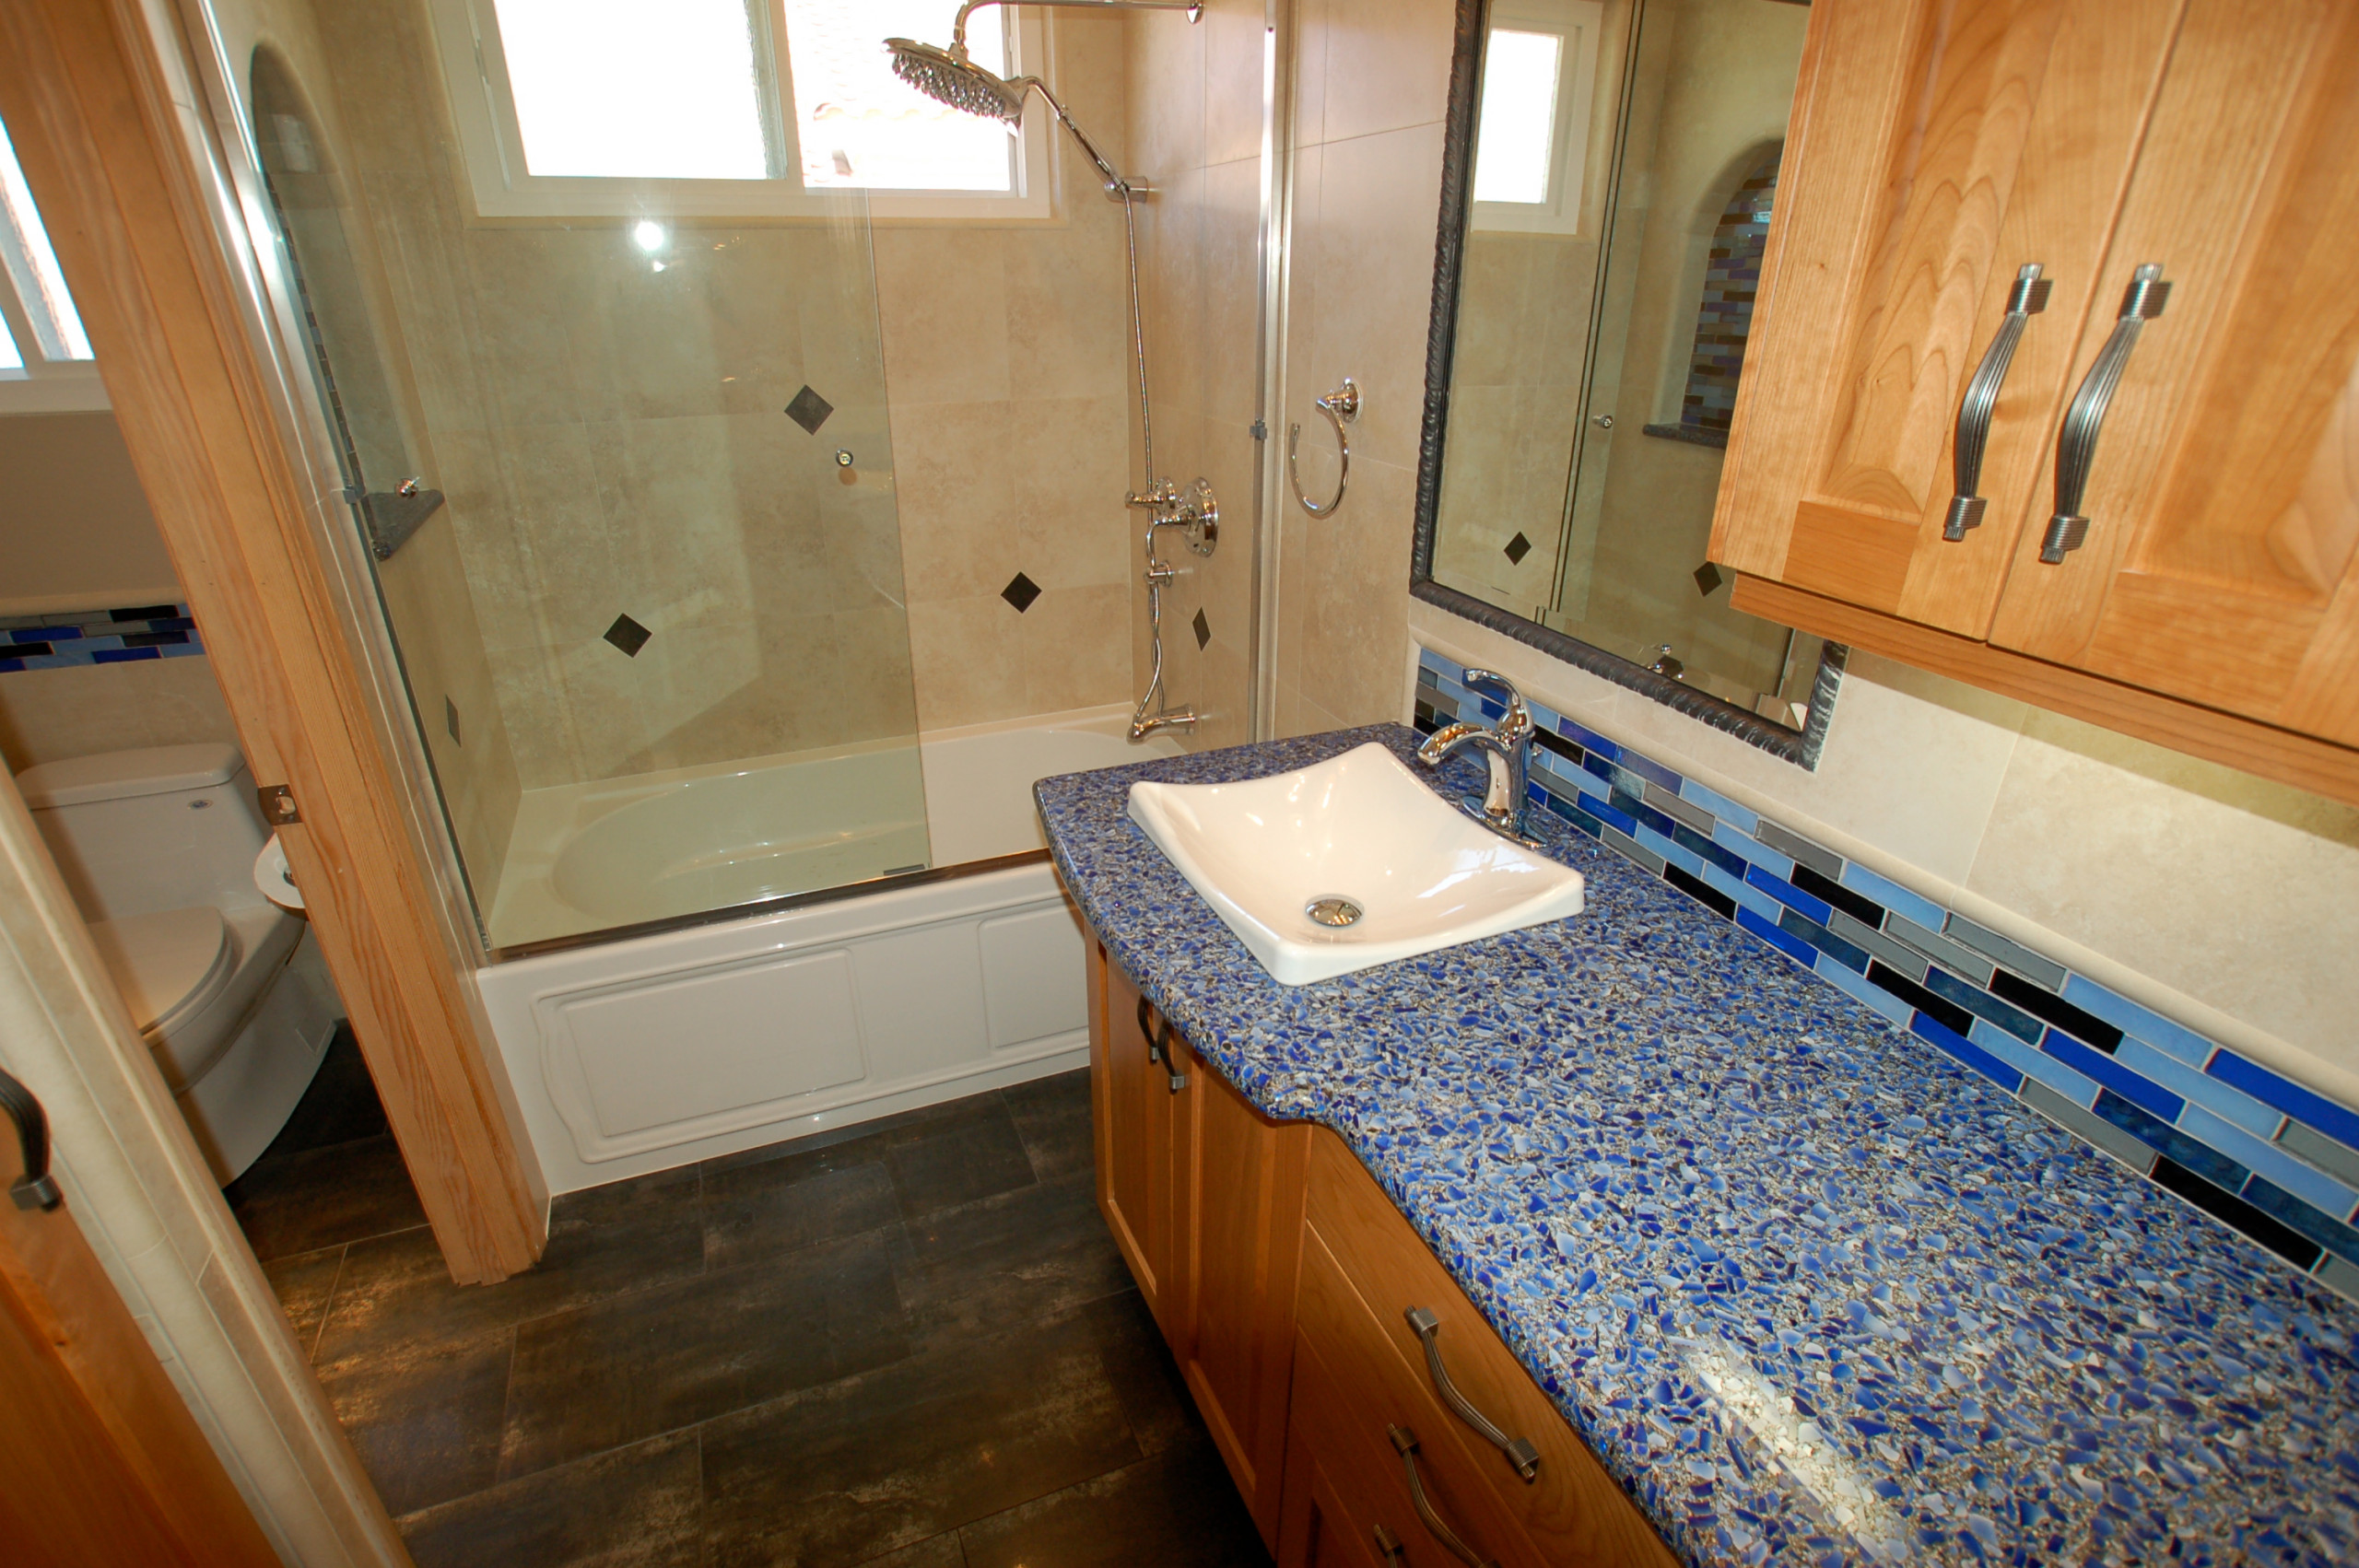 75 Beautiful Bathroom With A Vessel Sink And Recycled Glass Countertops Pictures Ideas January 2021 Houzz